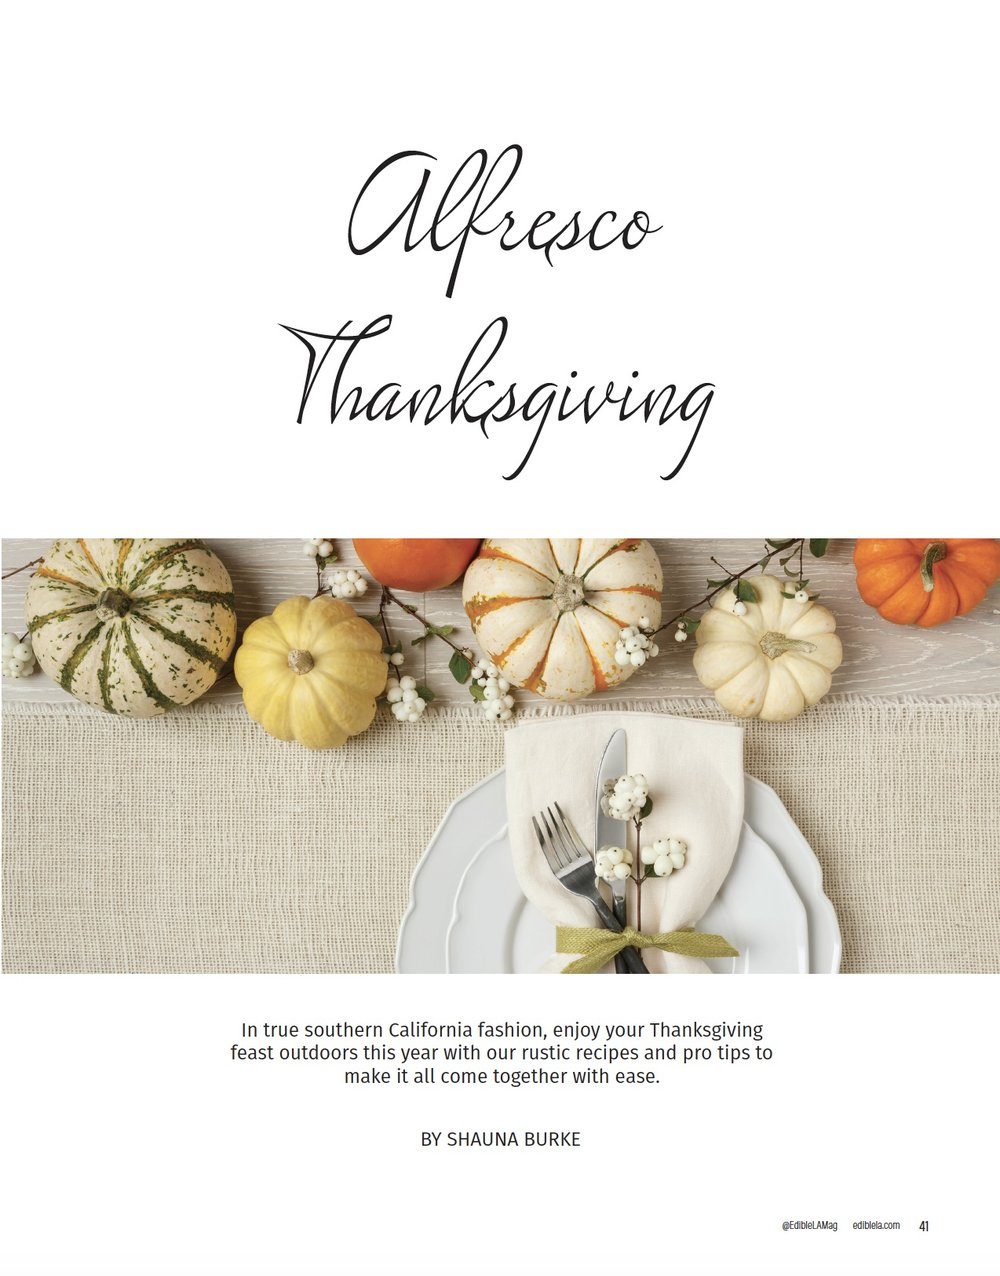 Alfresco Thanksgiving /  Edible LA